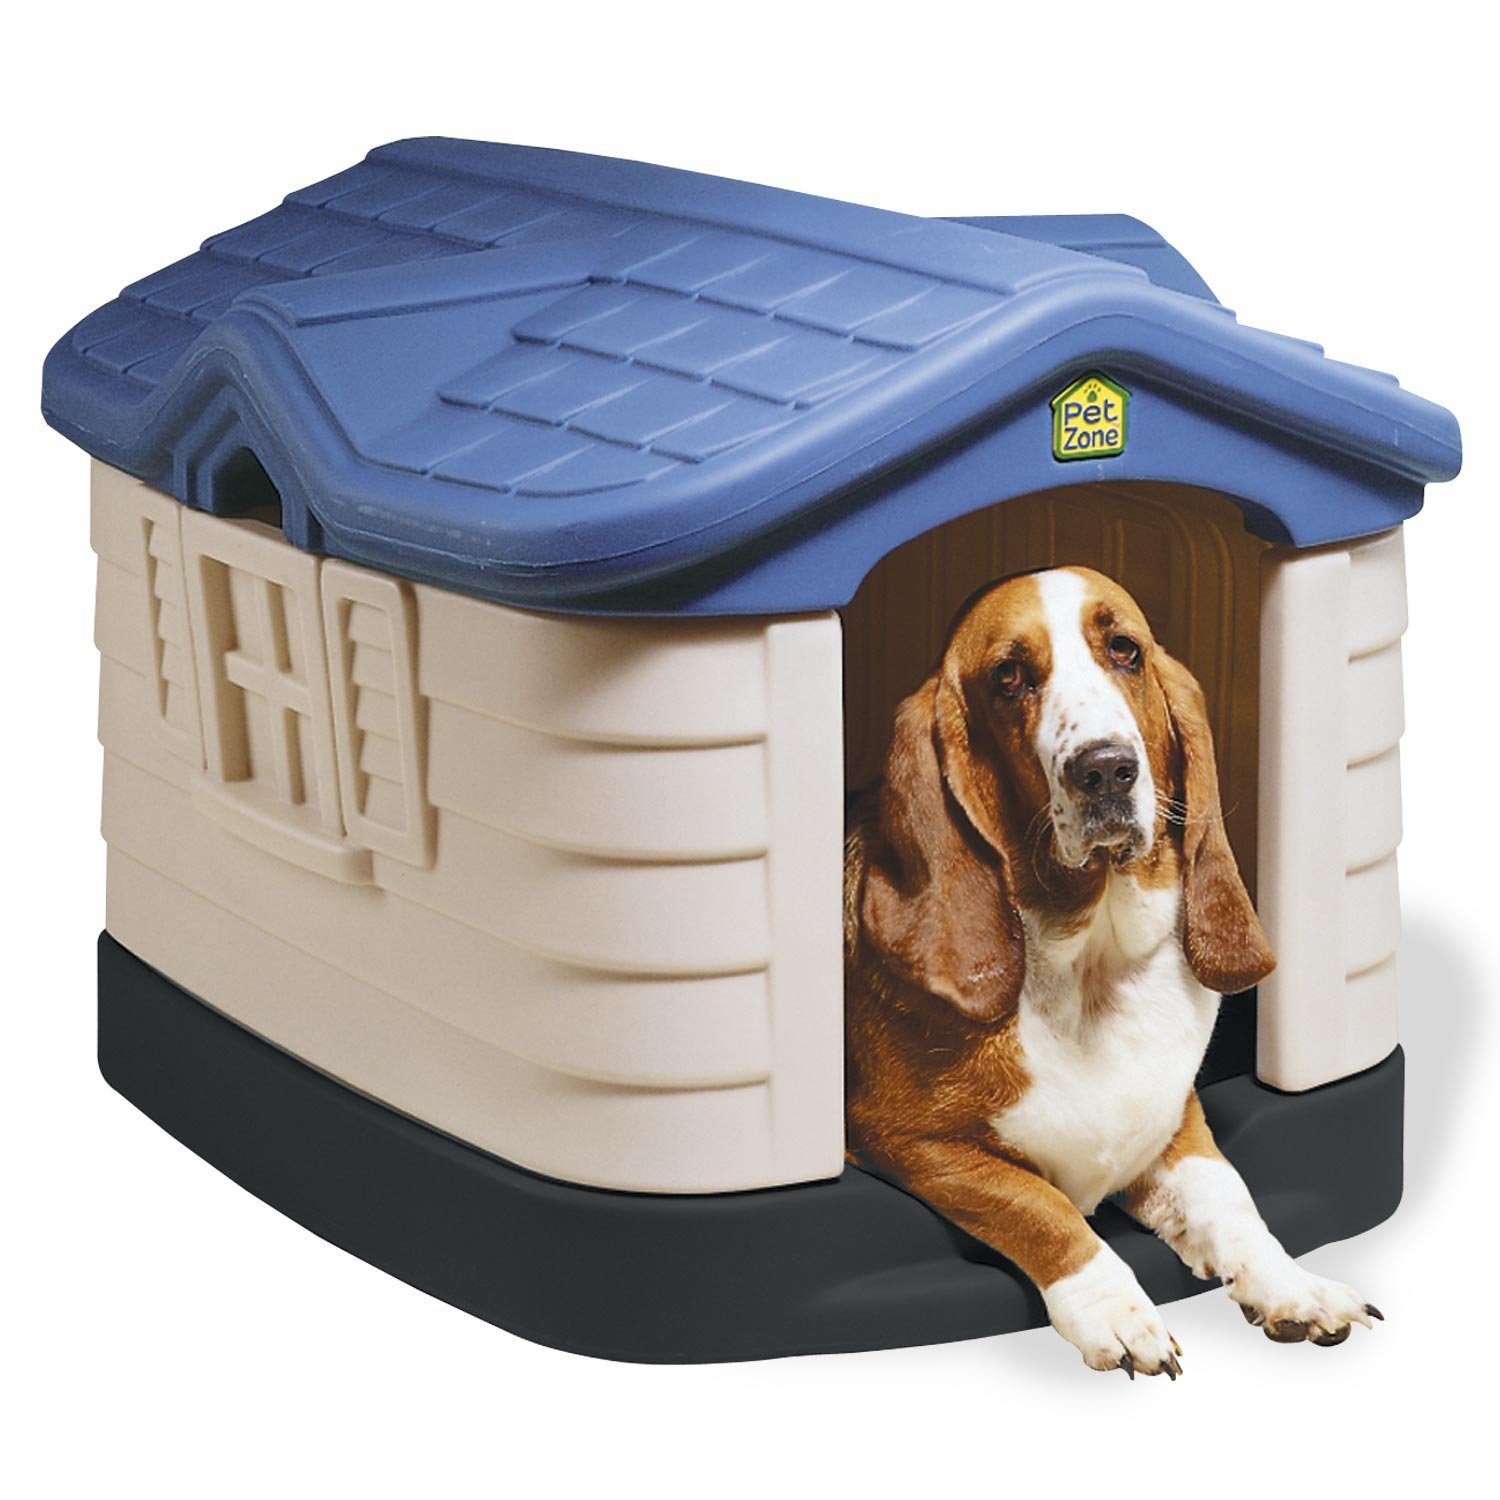 Pets At Home Dog Igloo